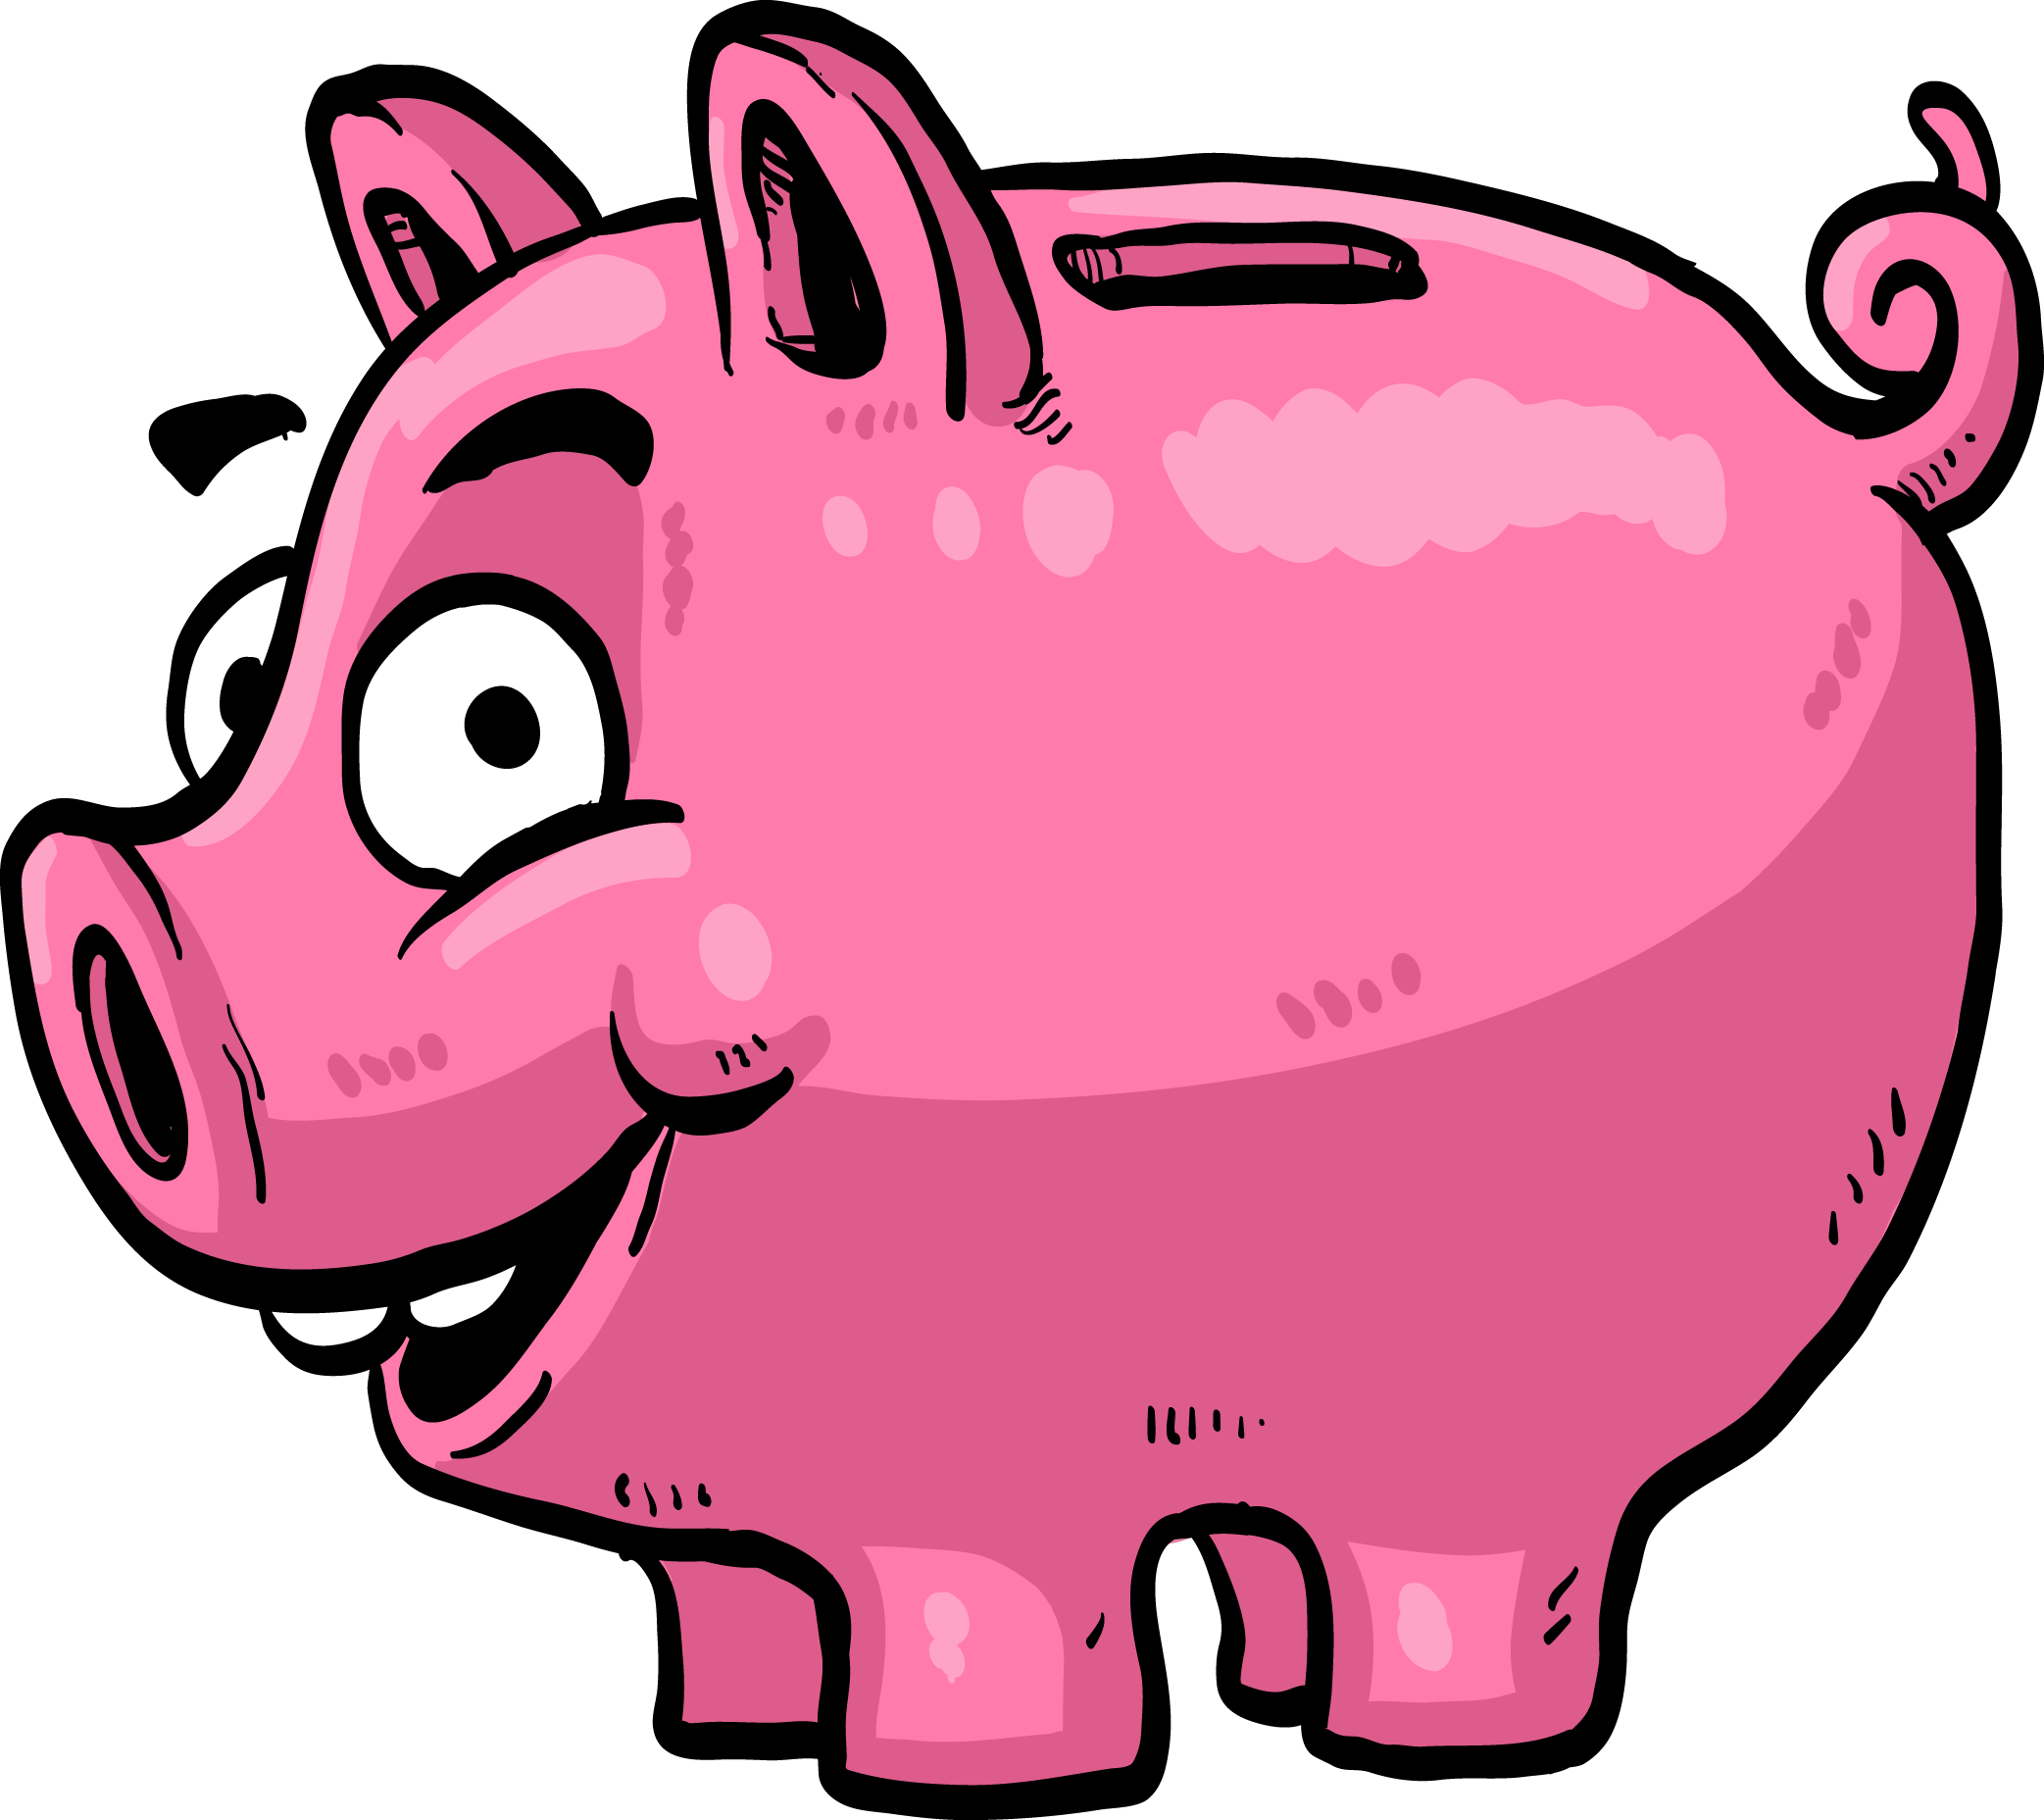 Clipart piggy bank royalty free library Money Saving Piggy bank Clip art - Piggy bank 2085*1856 transprent ... royalty free library